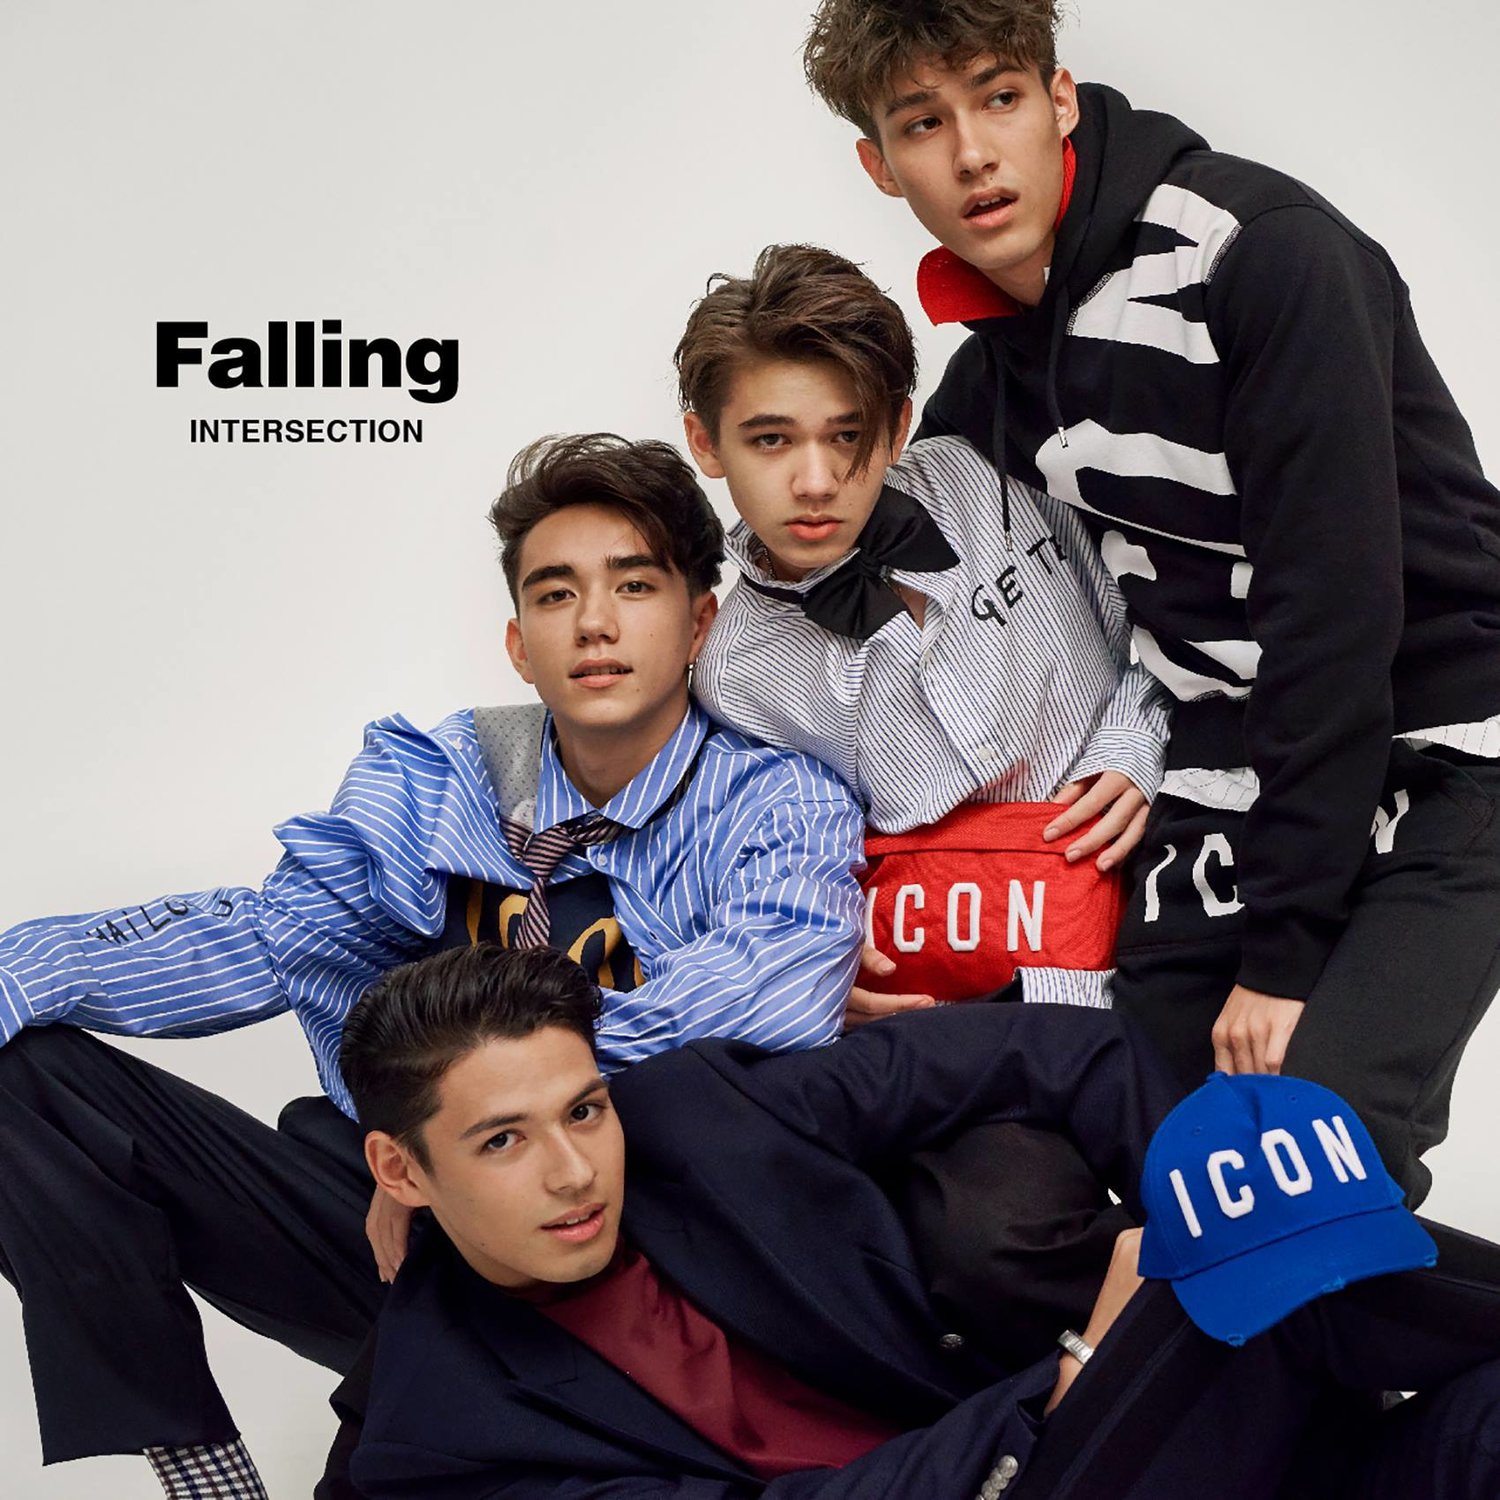 INTERSECTION: The New and Freshest Boy Band On Our Radar